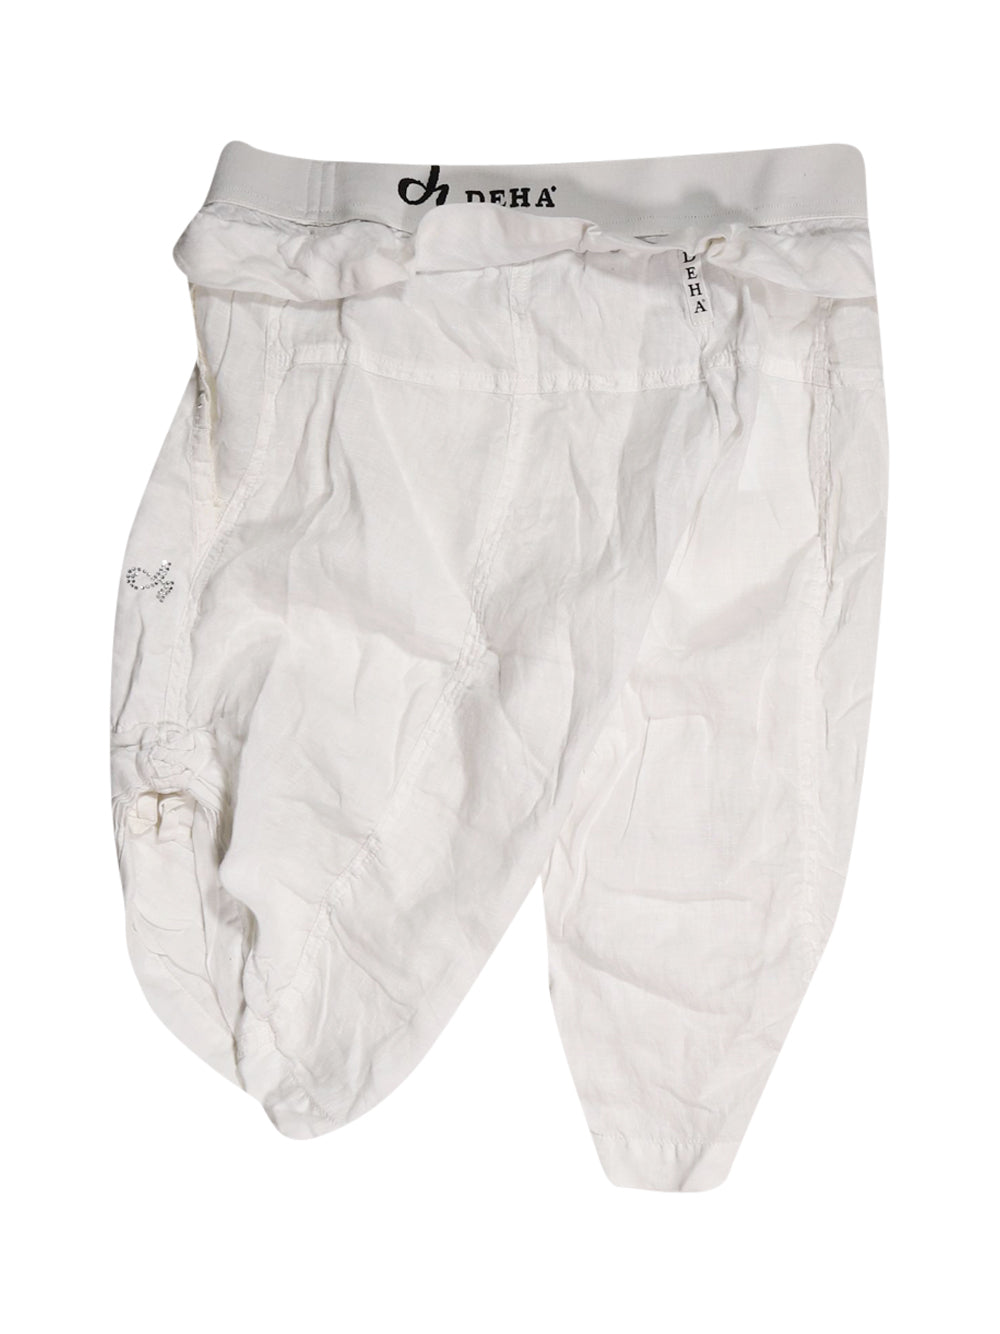 Back photo of Preloved Deha White Woman's shorts - size 8/S